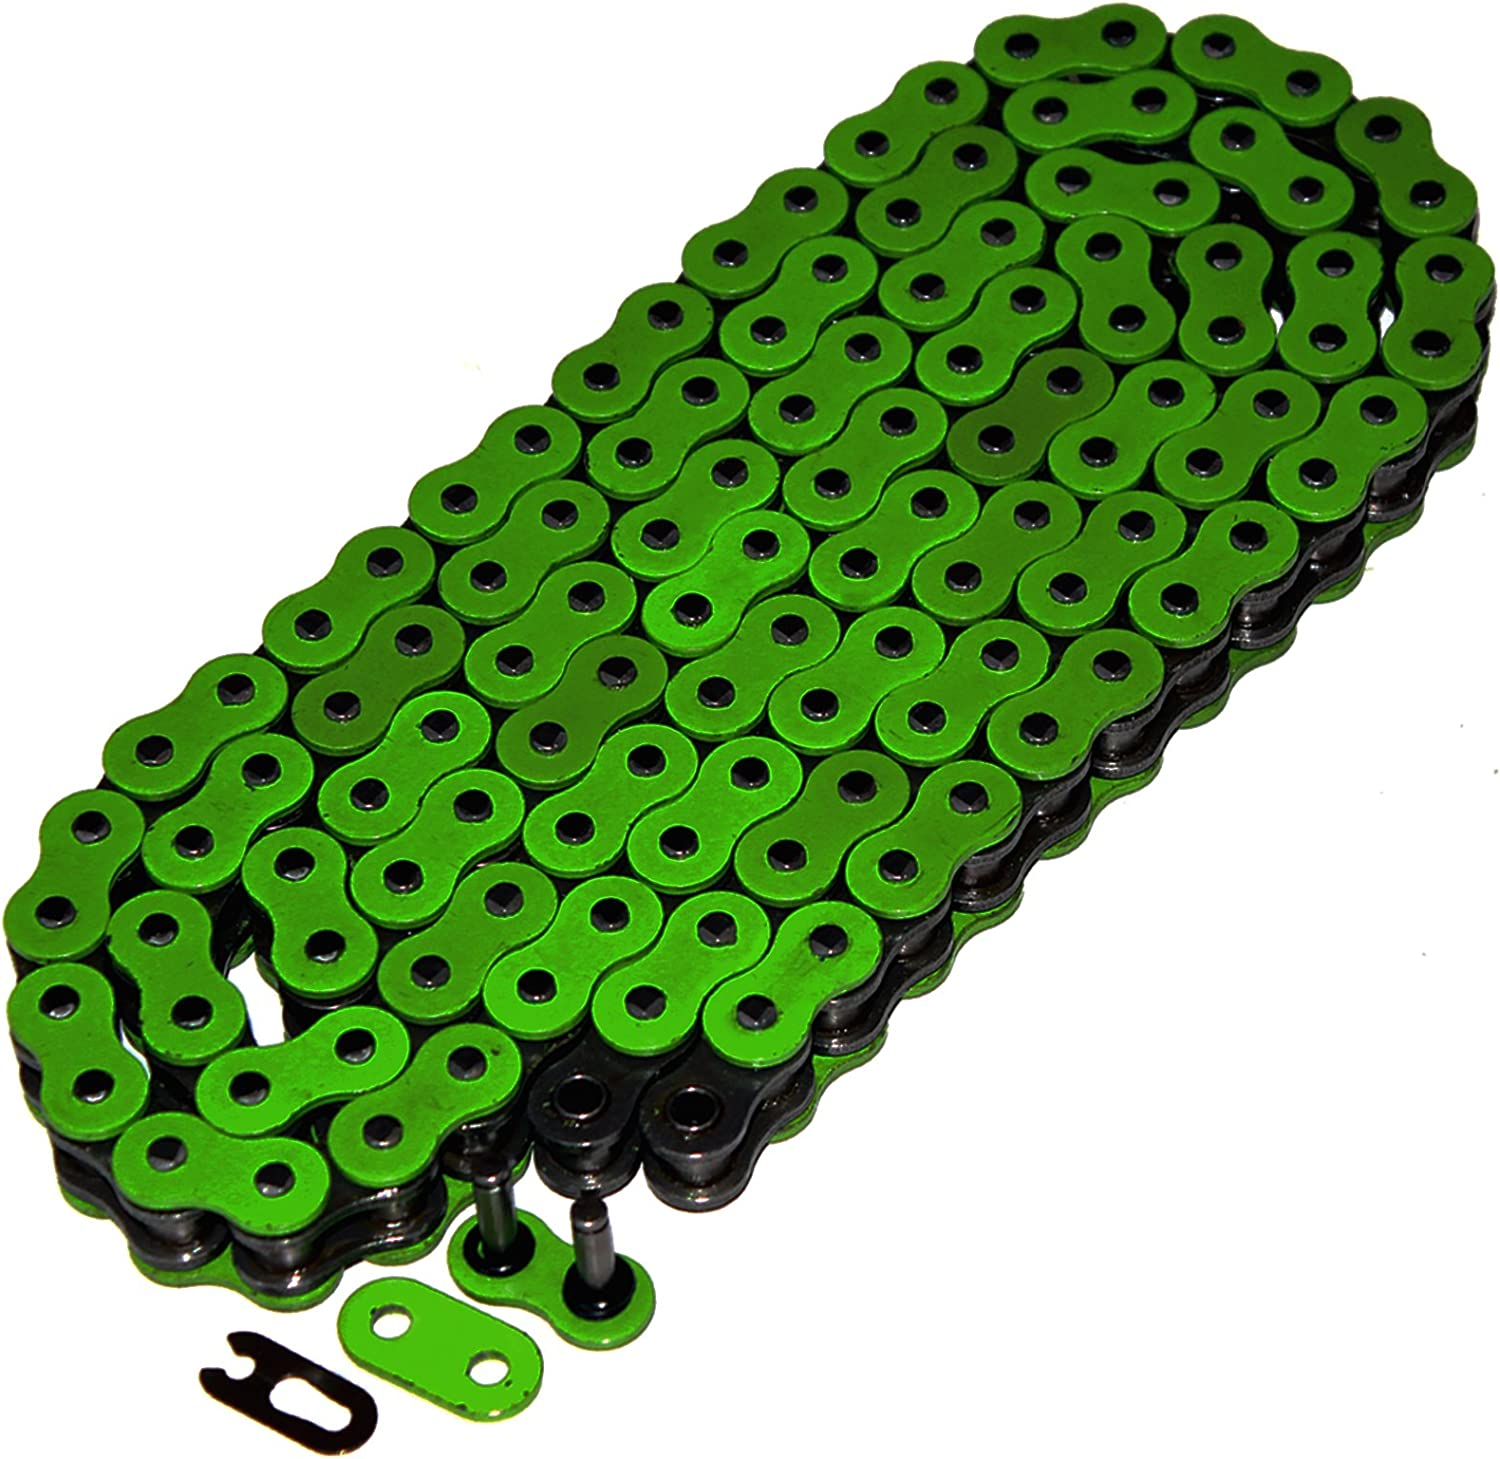 Caltric Free shipping / New O-Ring Drive Chain 5 ☆ very popular Compatible 650 Kl Kawasaki Kl650 With